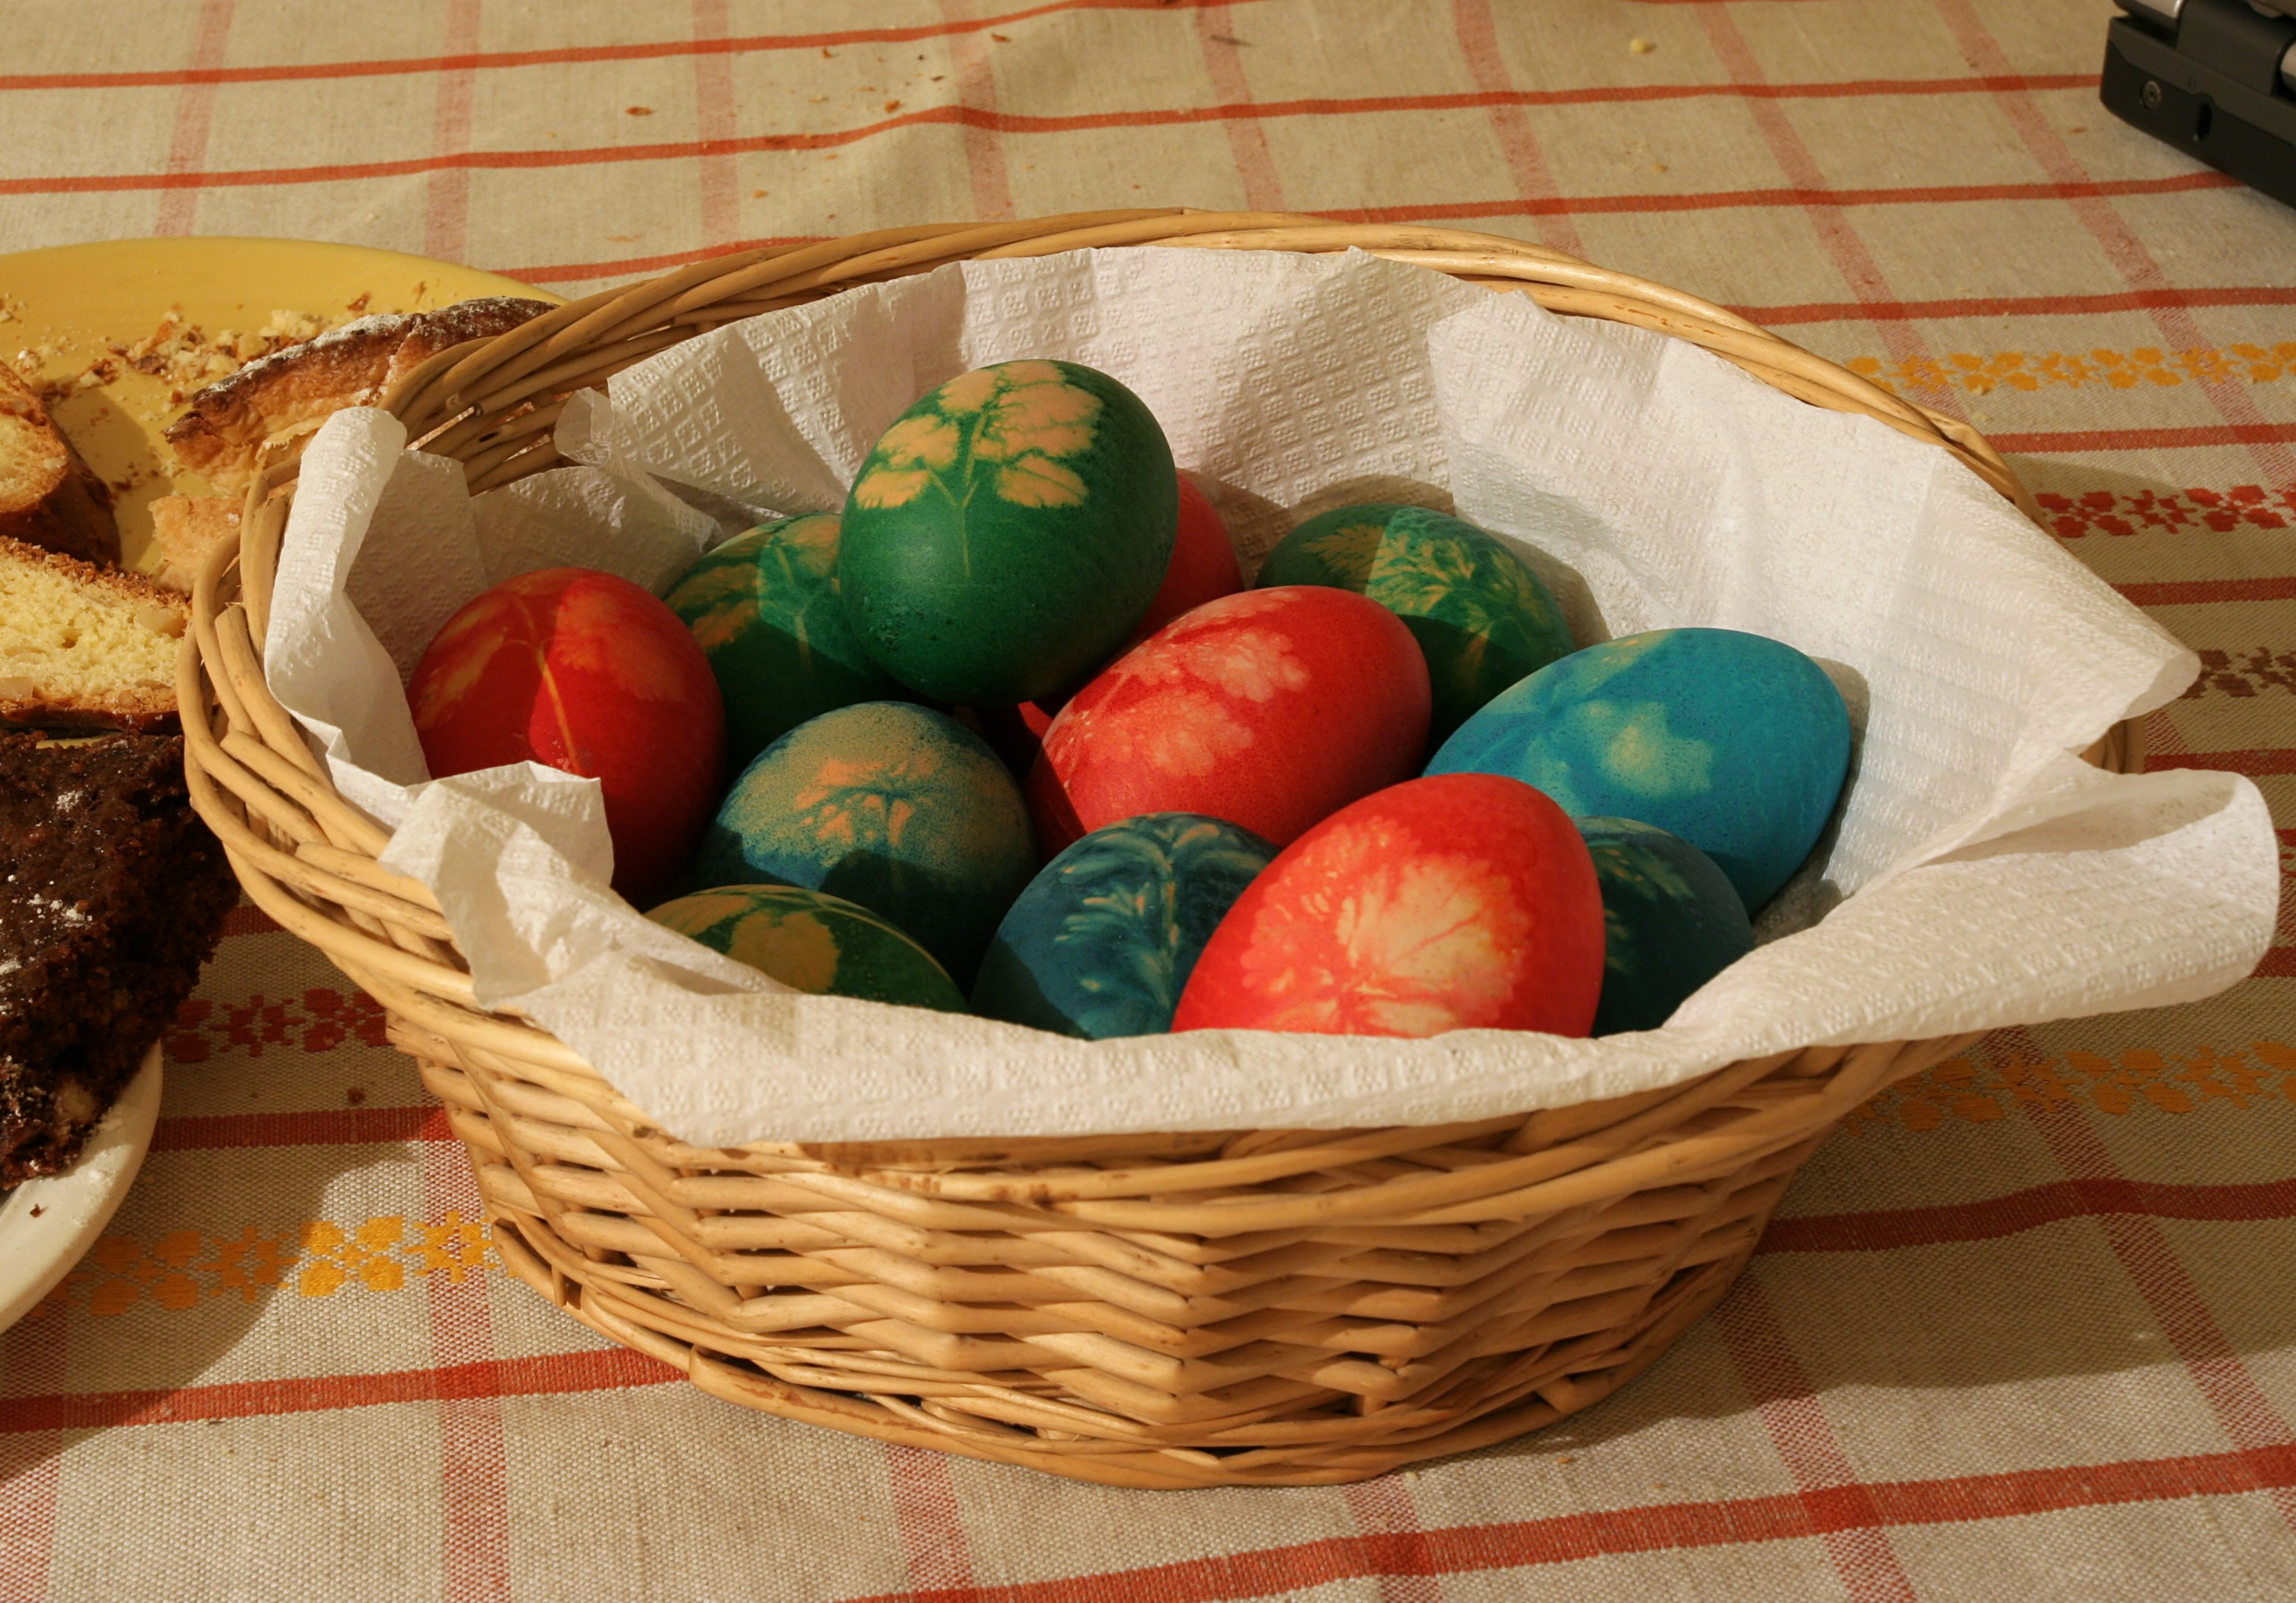 Easter eggs sit in a basket